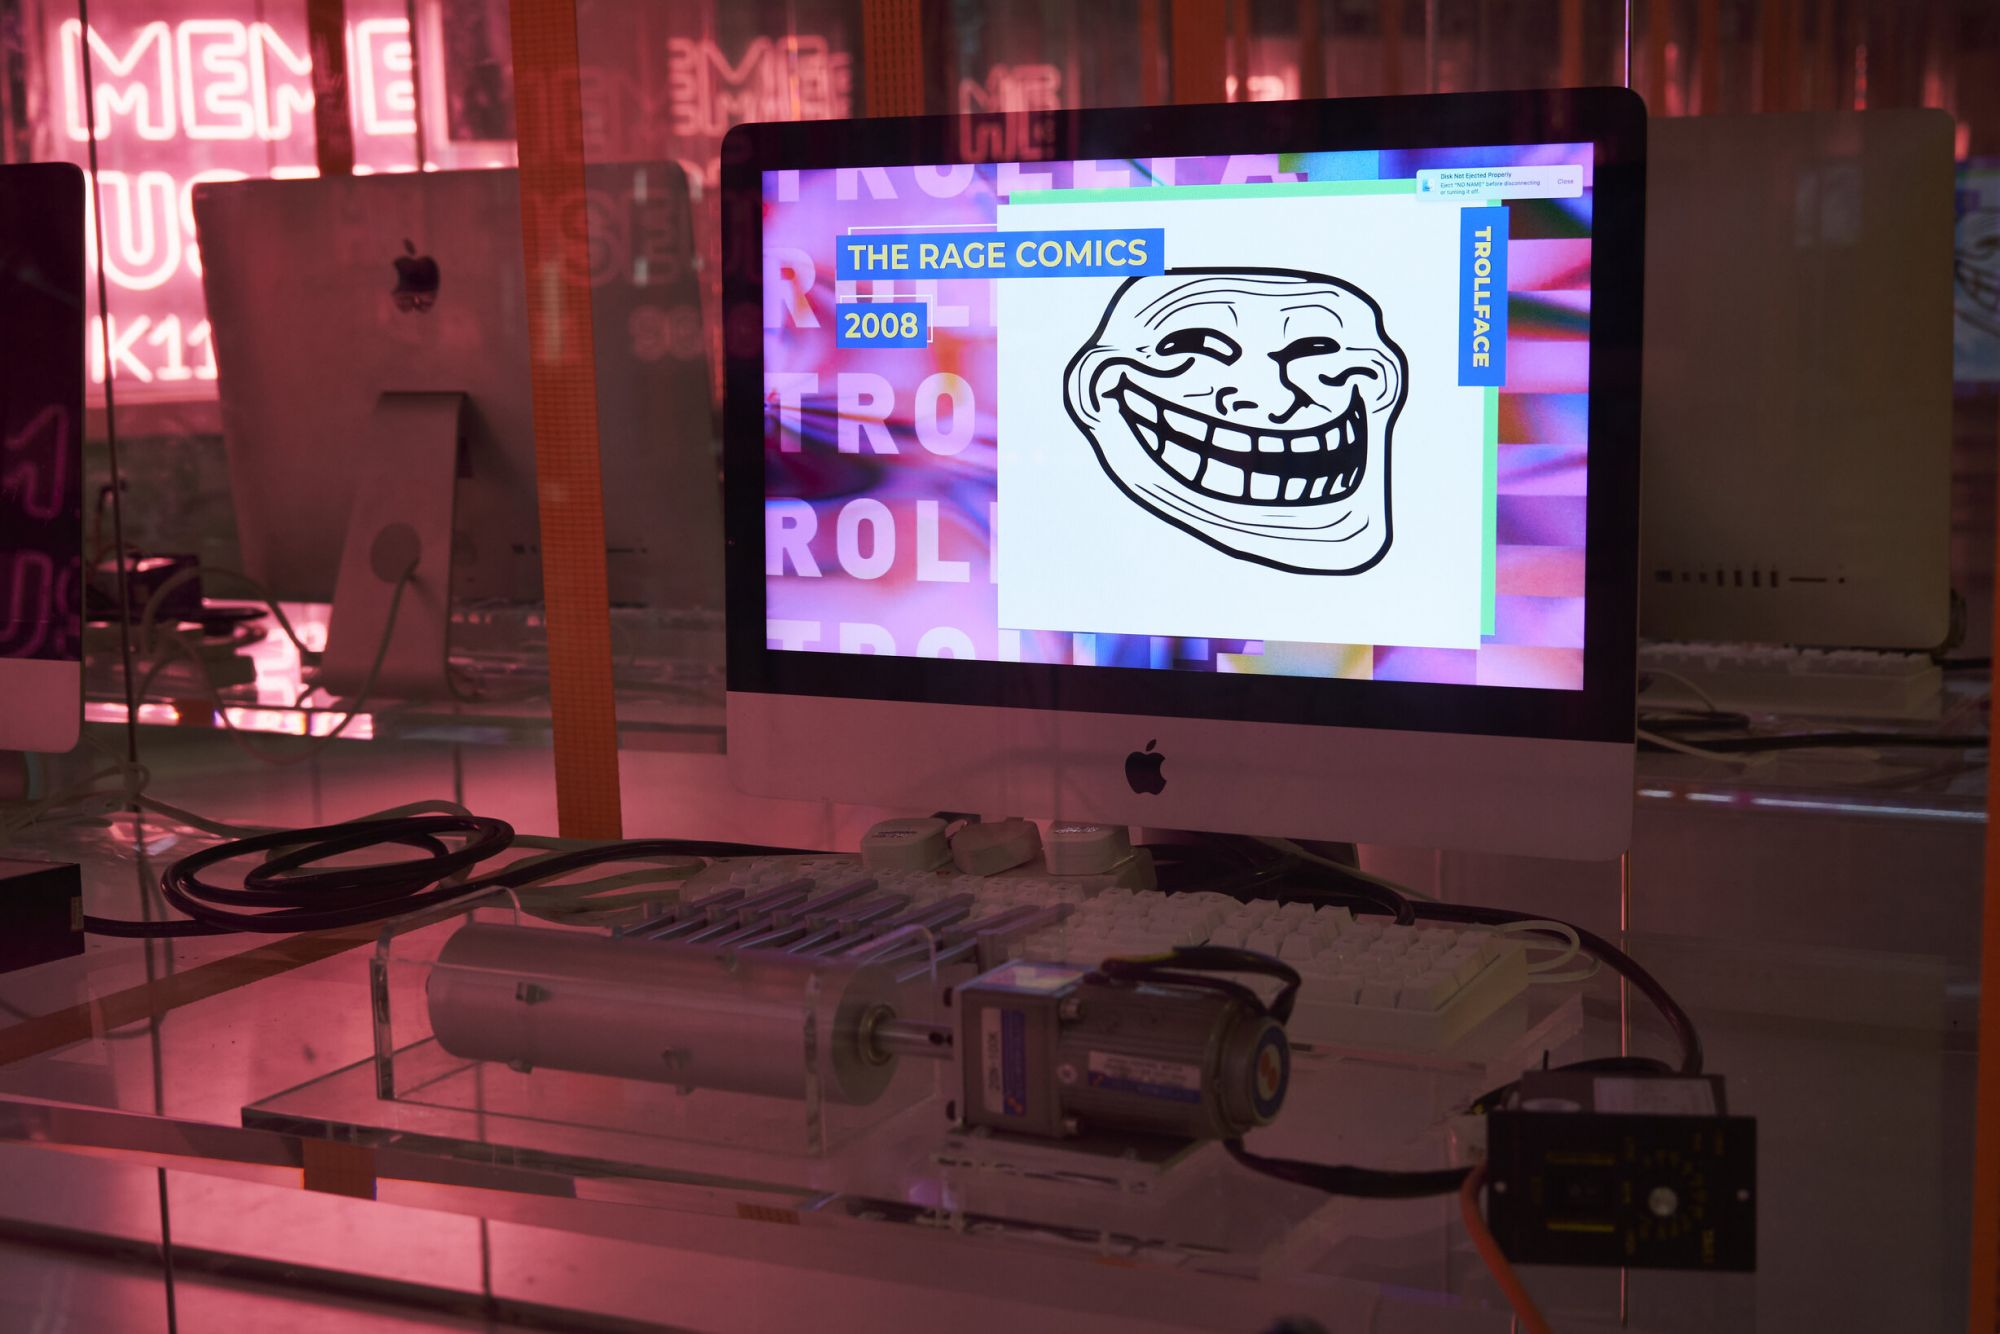 Take A Look Inside The World's First Meme Museum